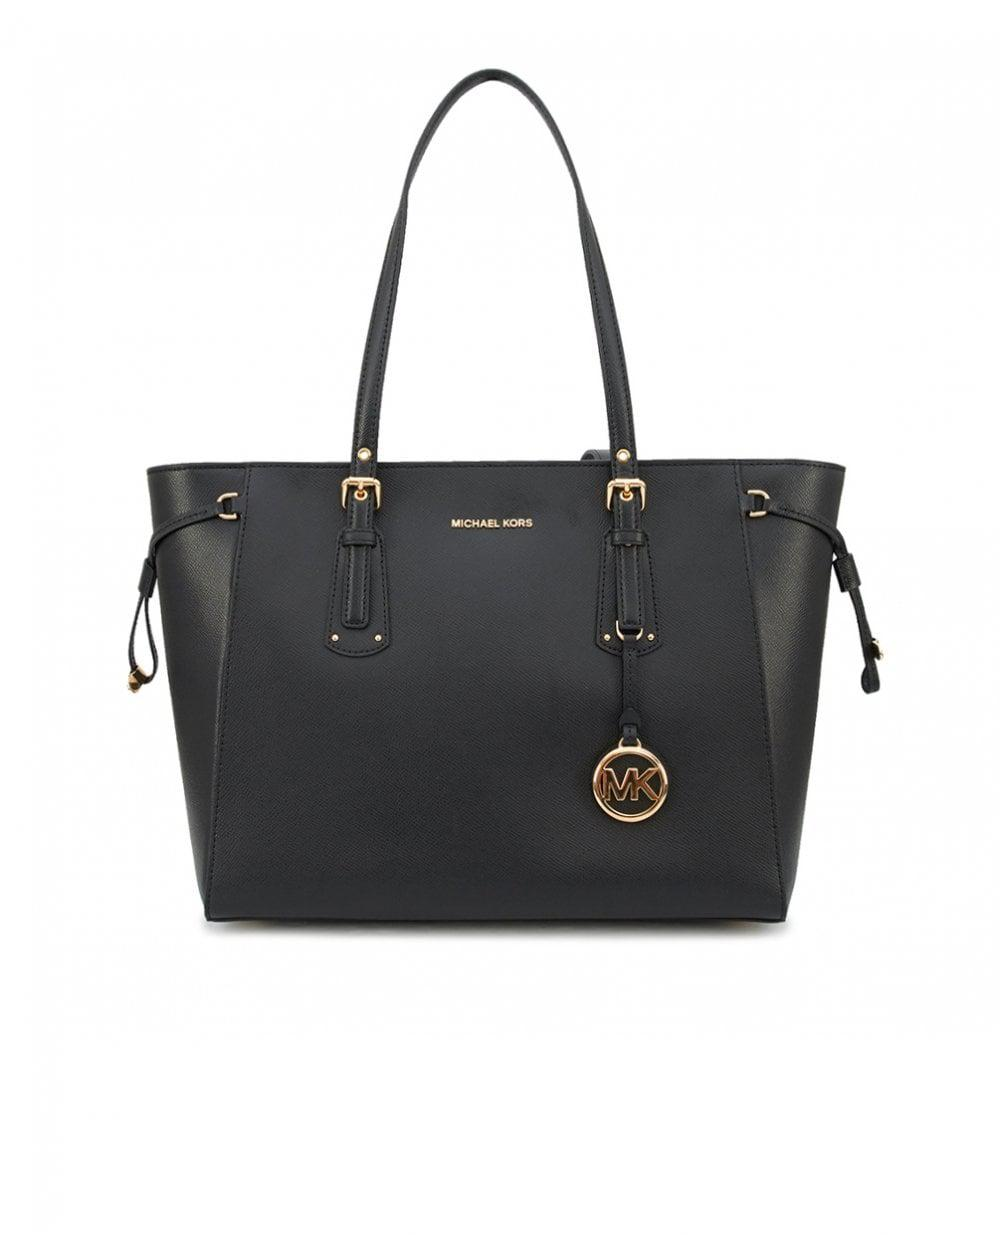 9b879db7cc47 Michael Kors - Black Voyager East West Top Zip Leather Tote - Lyst. View  fullscreen